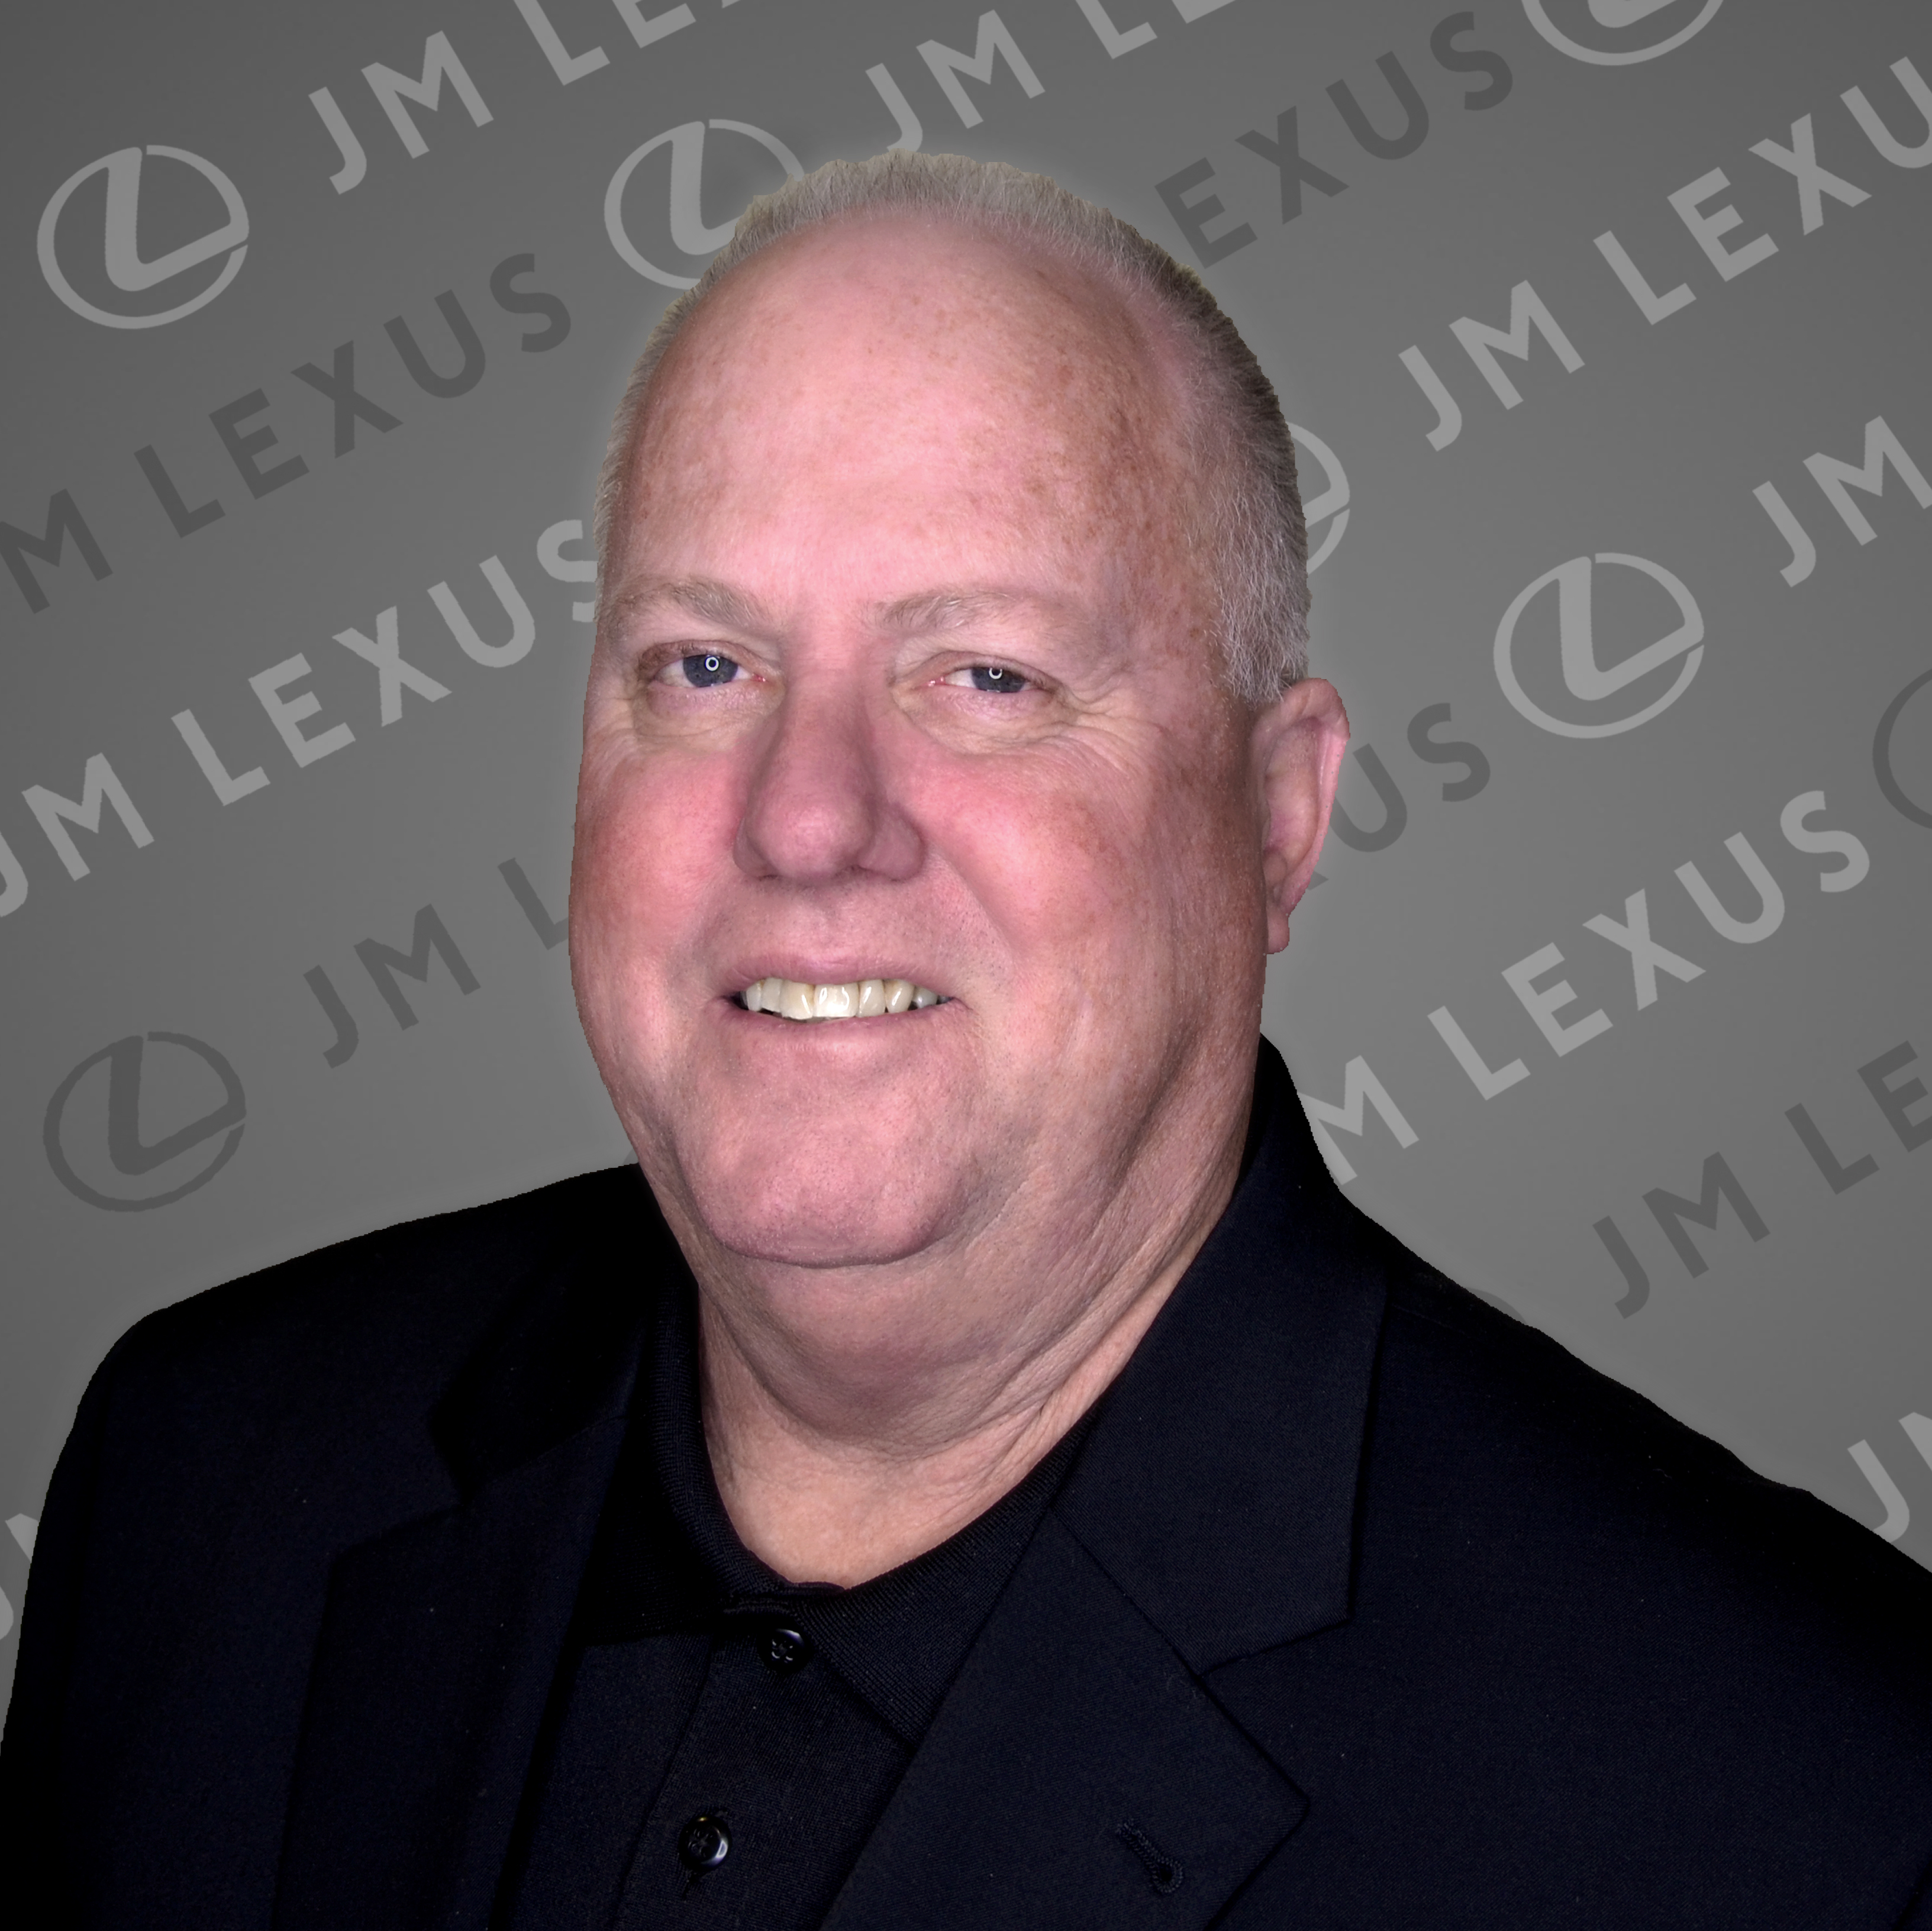 Jm Lexus Service >> Jm Lexus Announces New Vice President General Manager